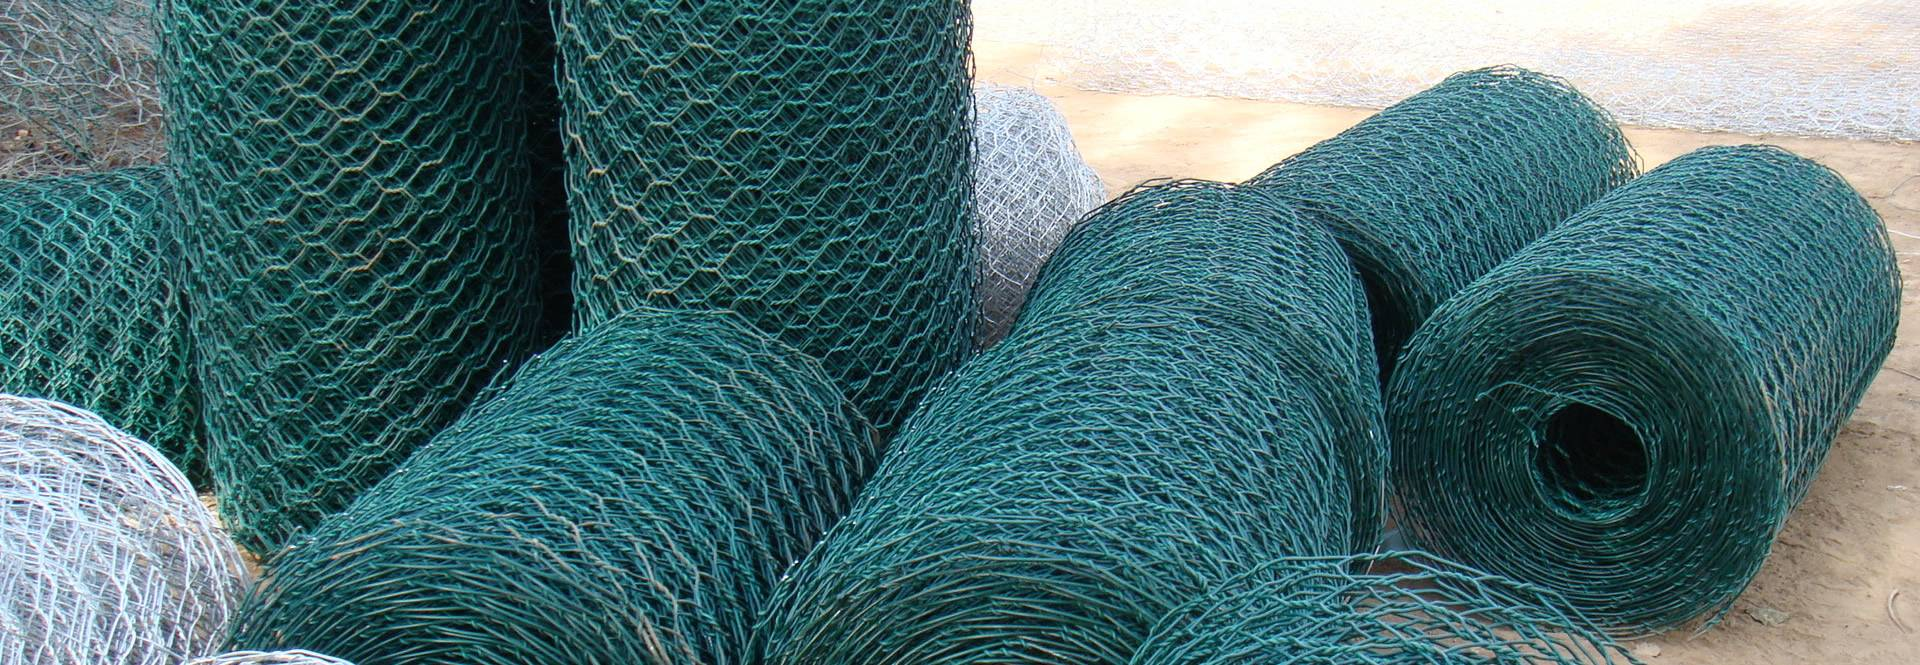 Many rolls of blue PVC coated poultry mesh.